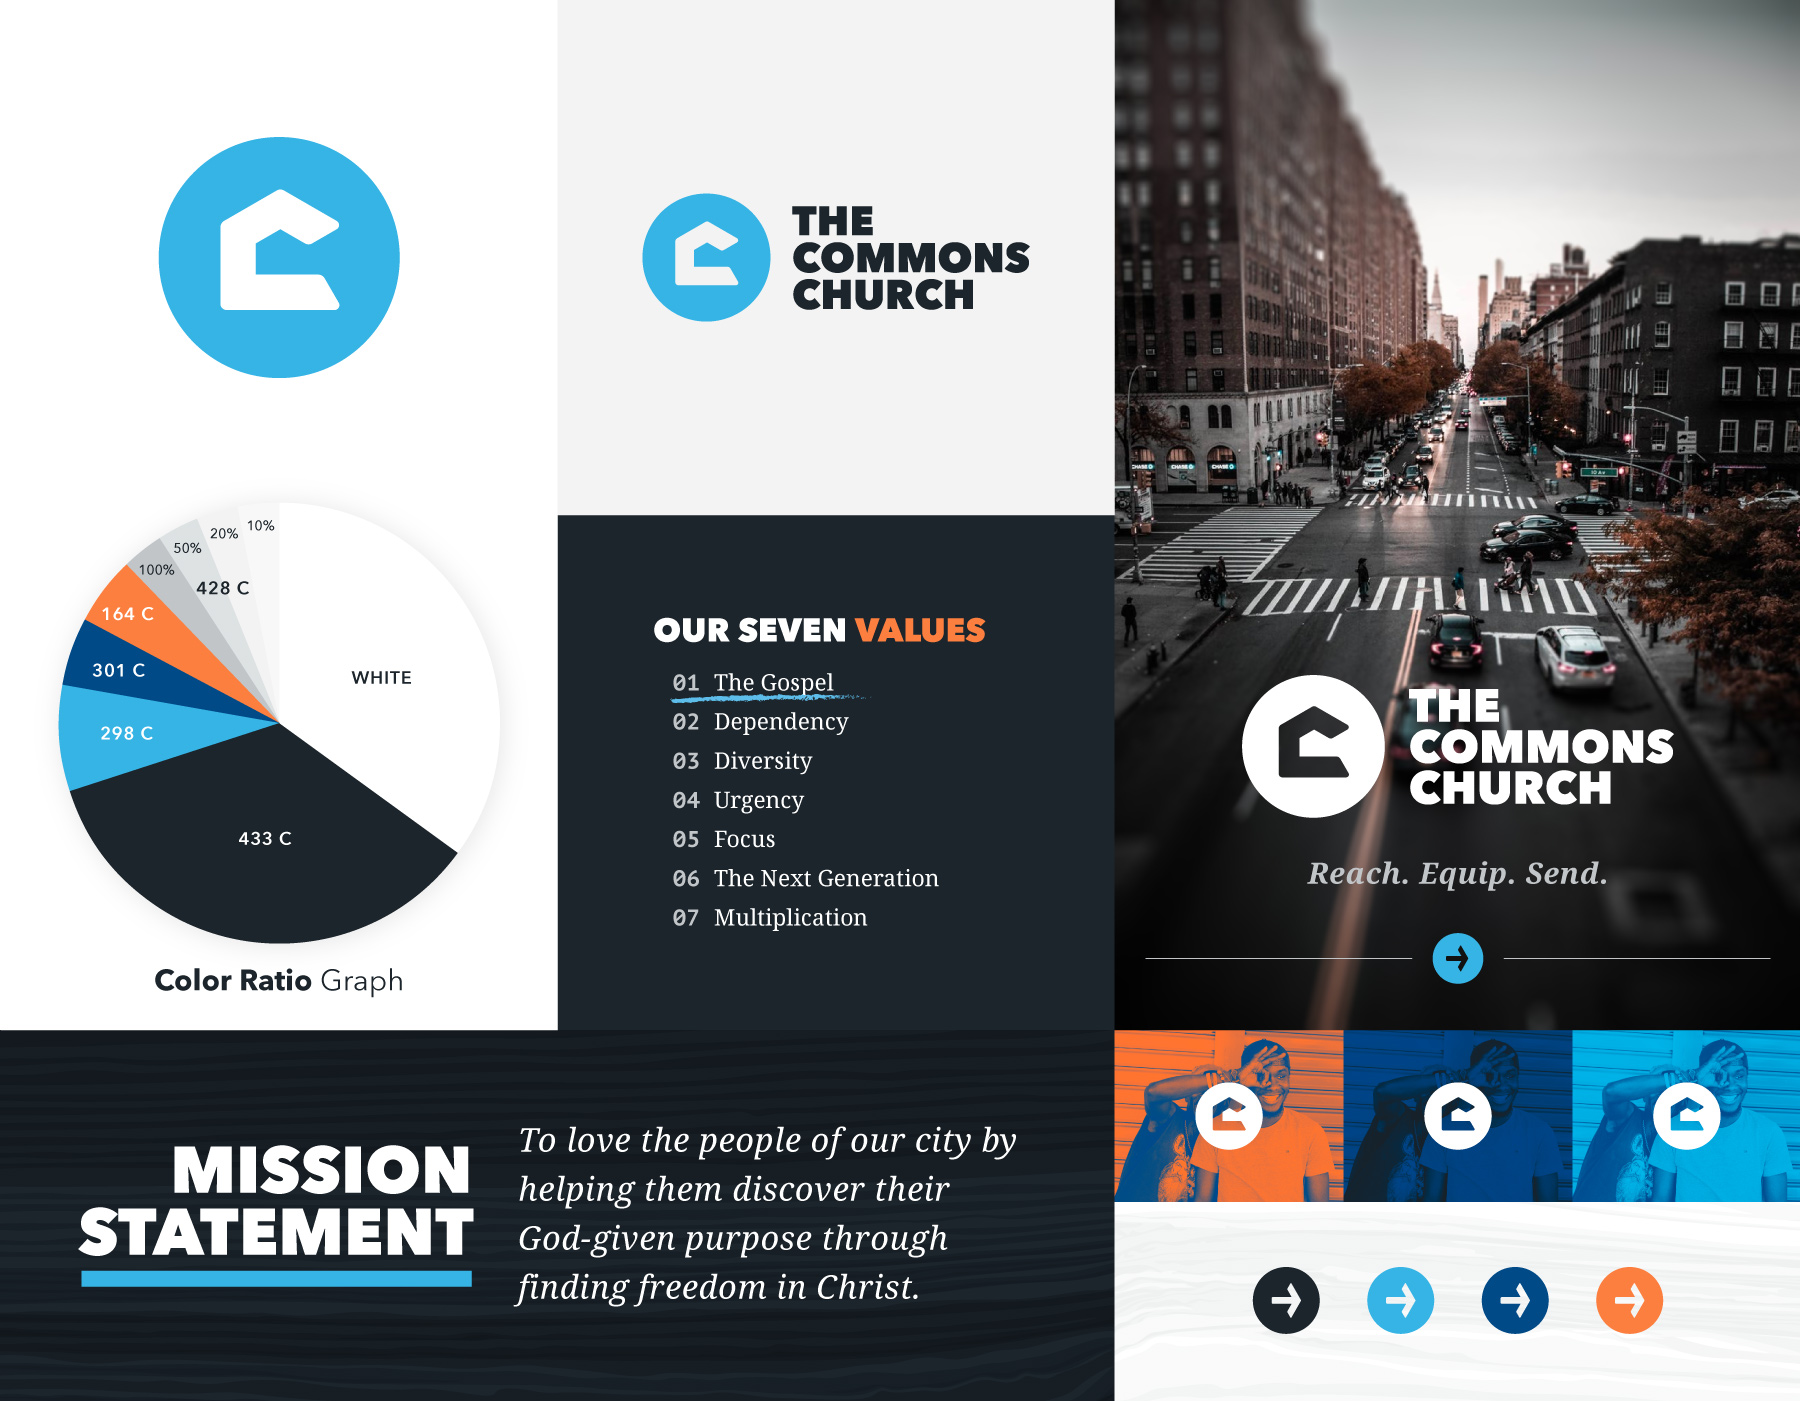 The Commons Church branding